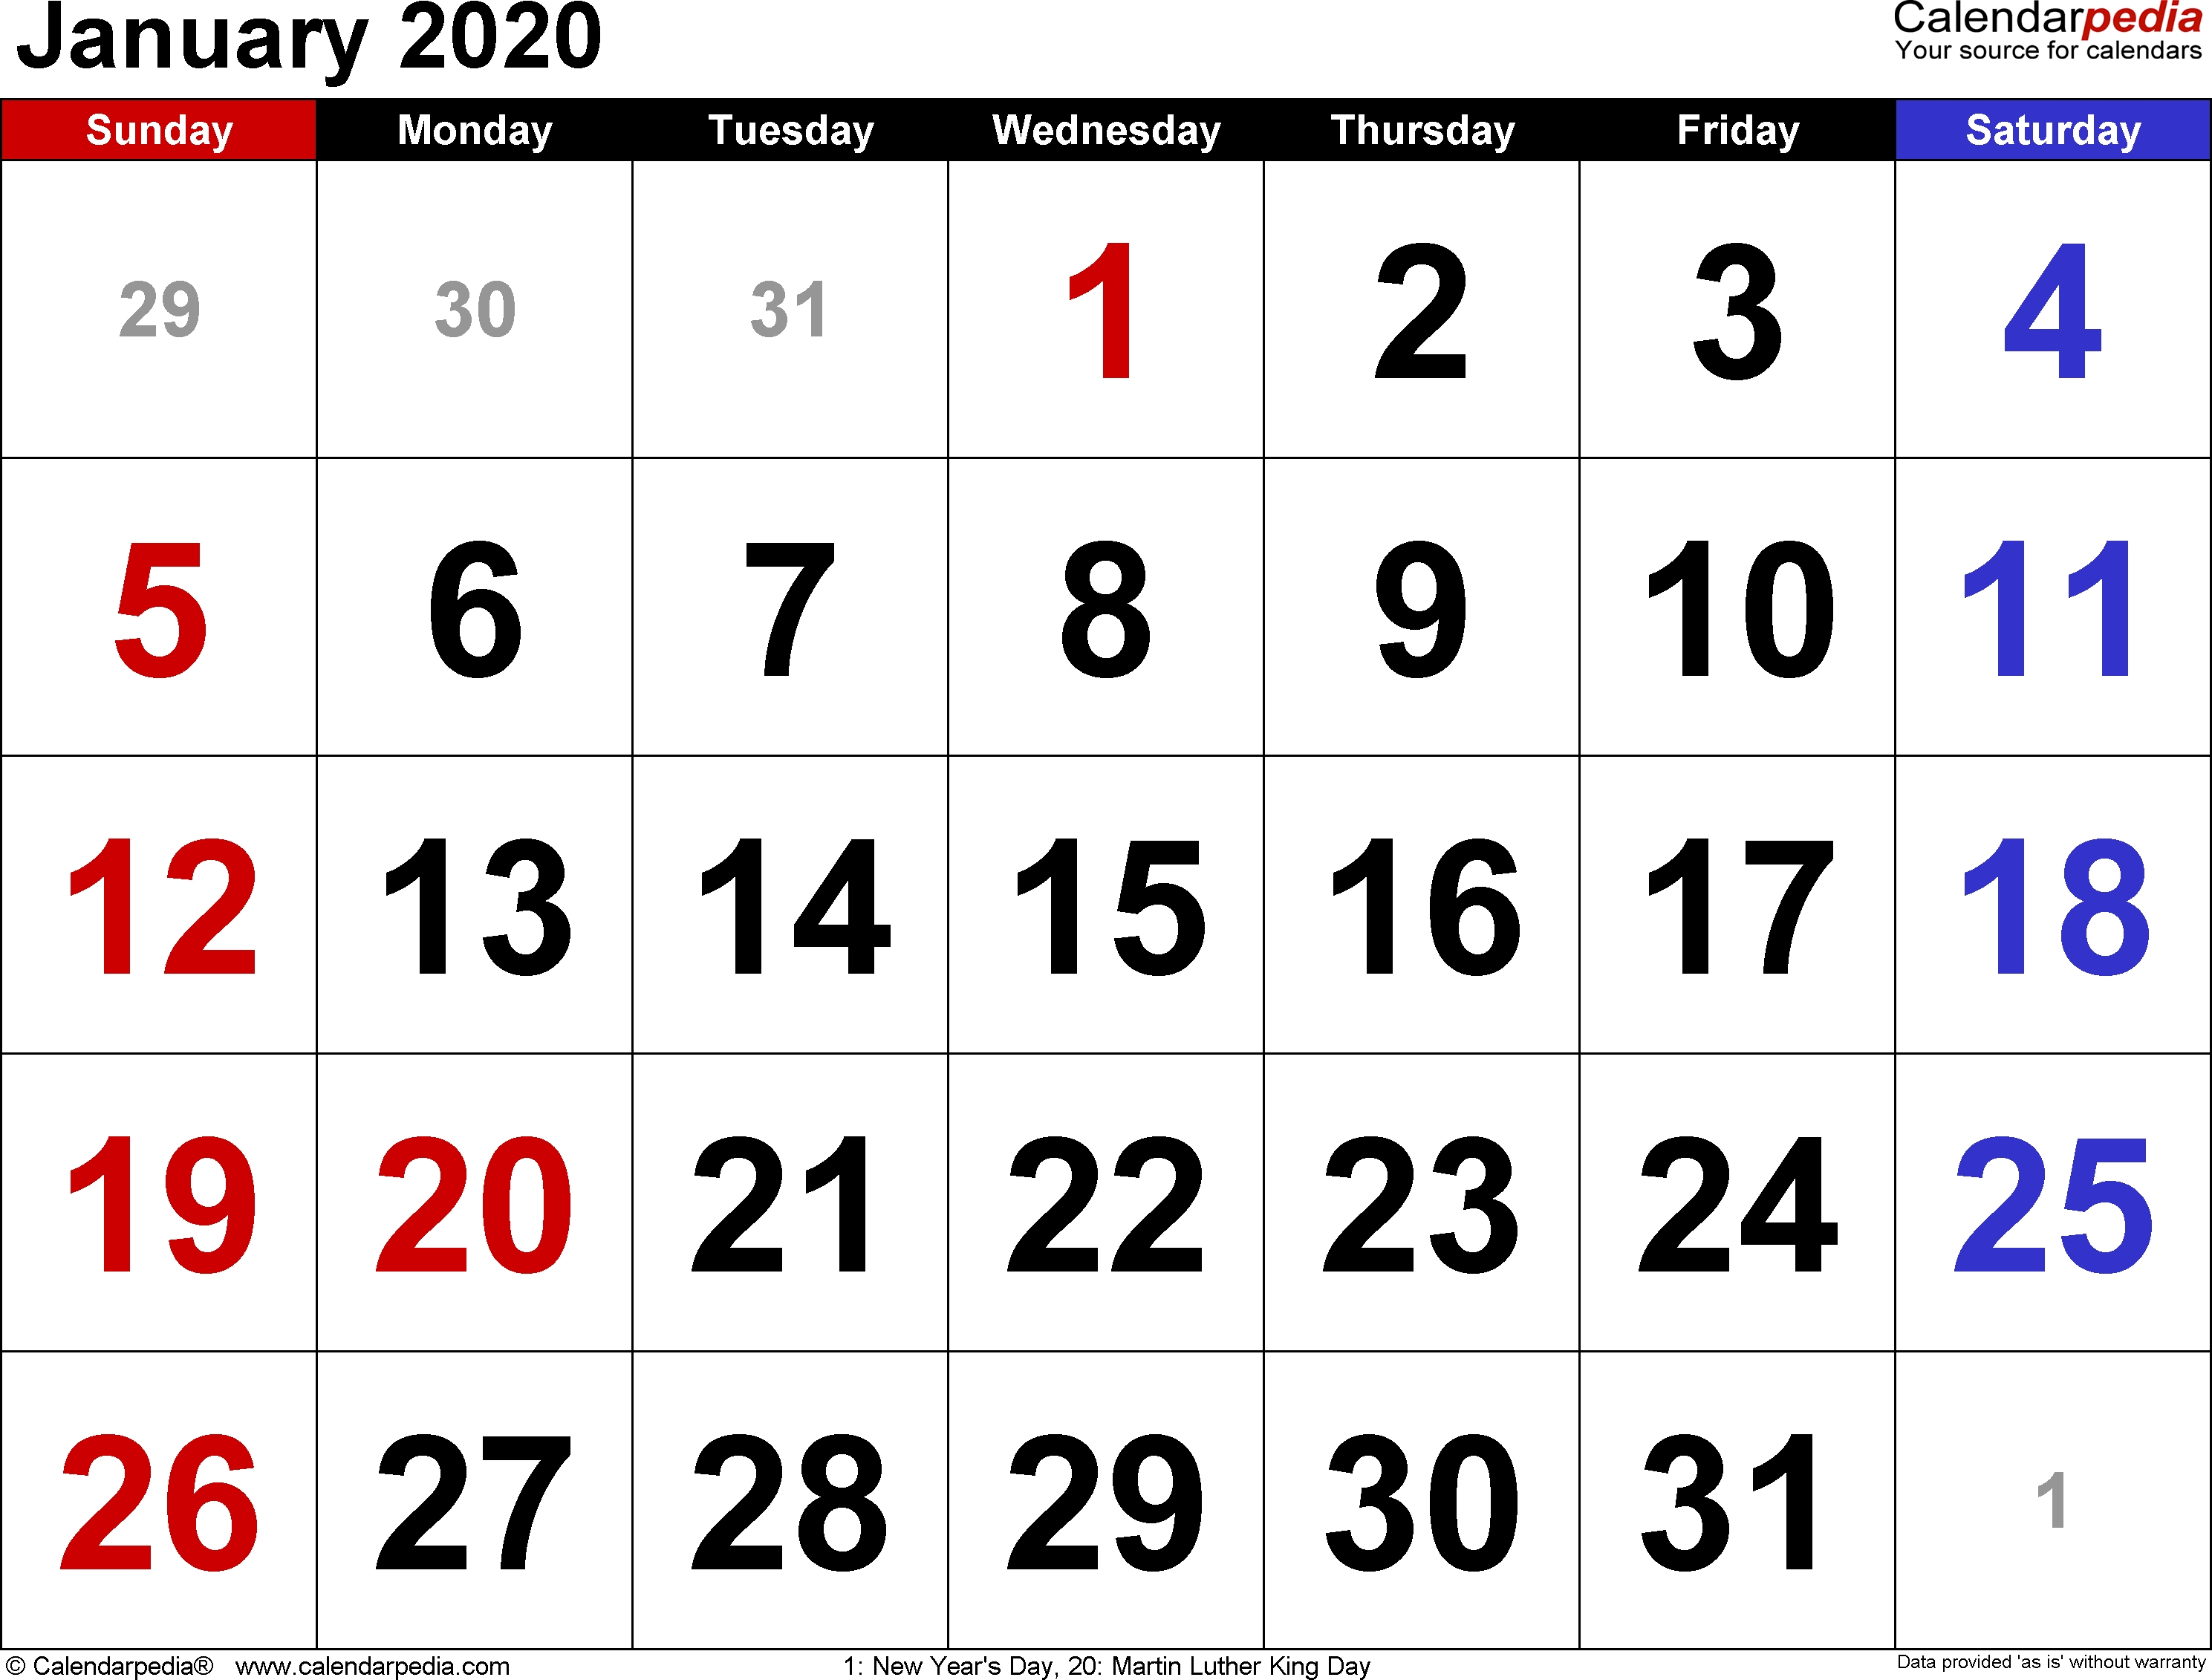 January 2020 Calendar Wallpapers - Wallpaper Cave-January 2020 Calendar Wallpaper